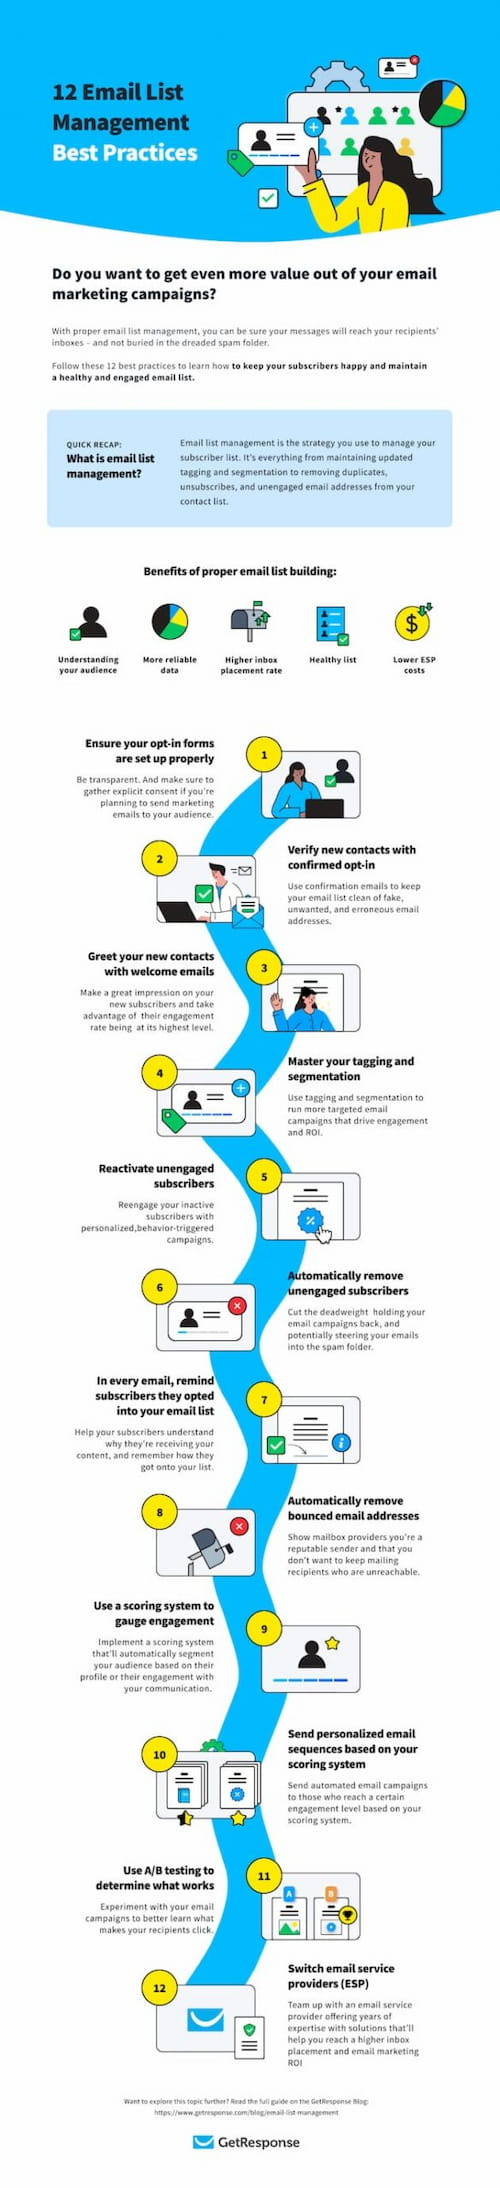 12 Email List Management Best Practices - infographic.